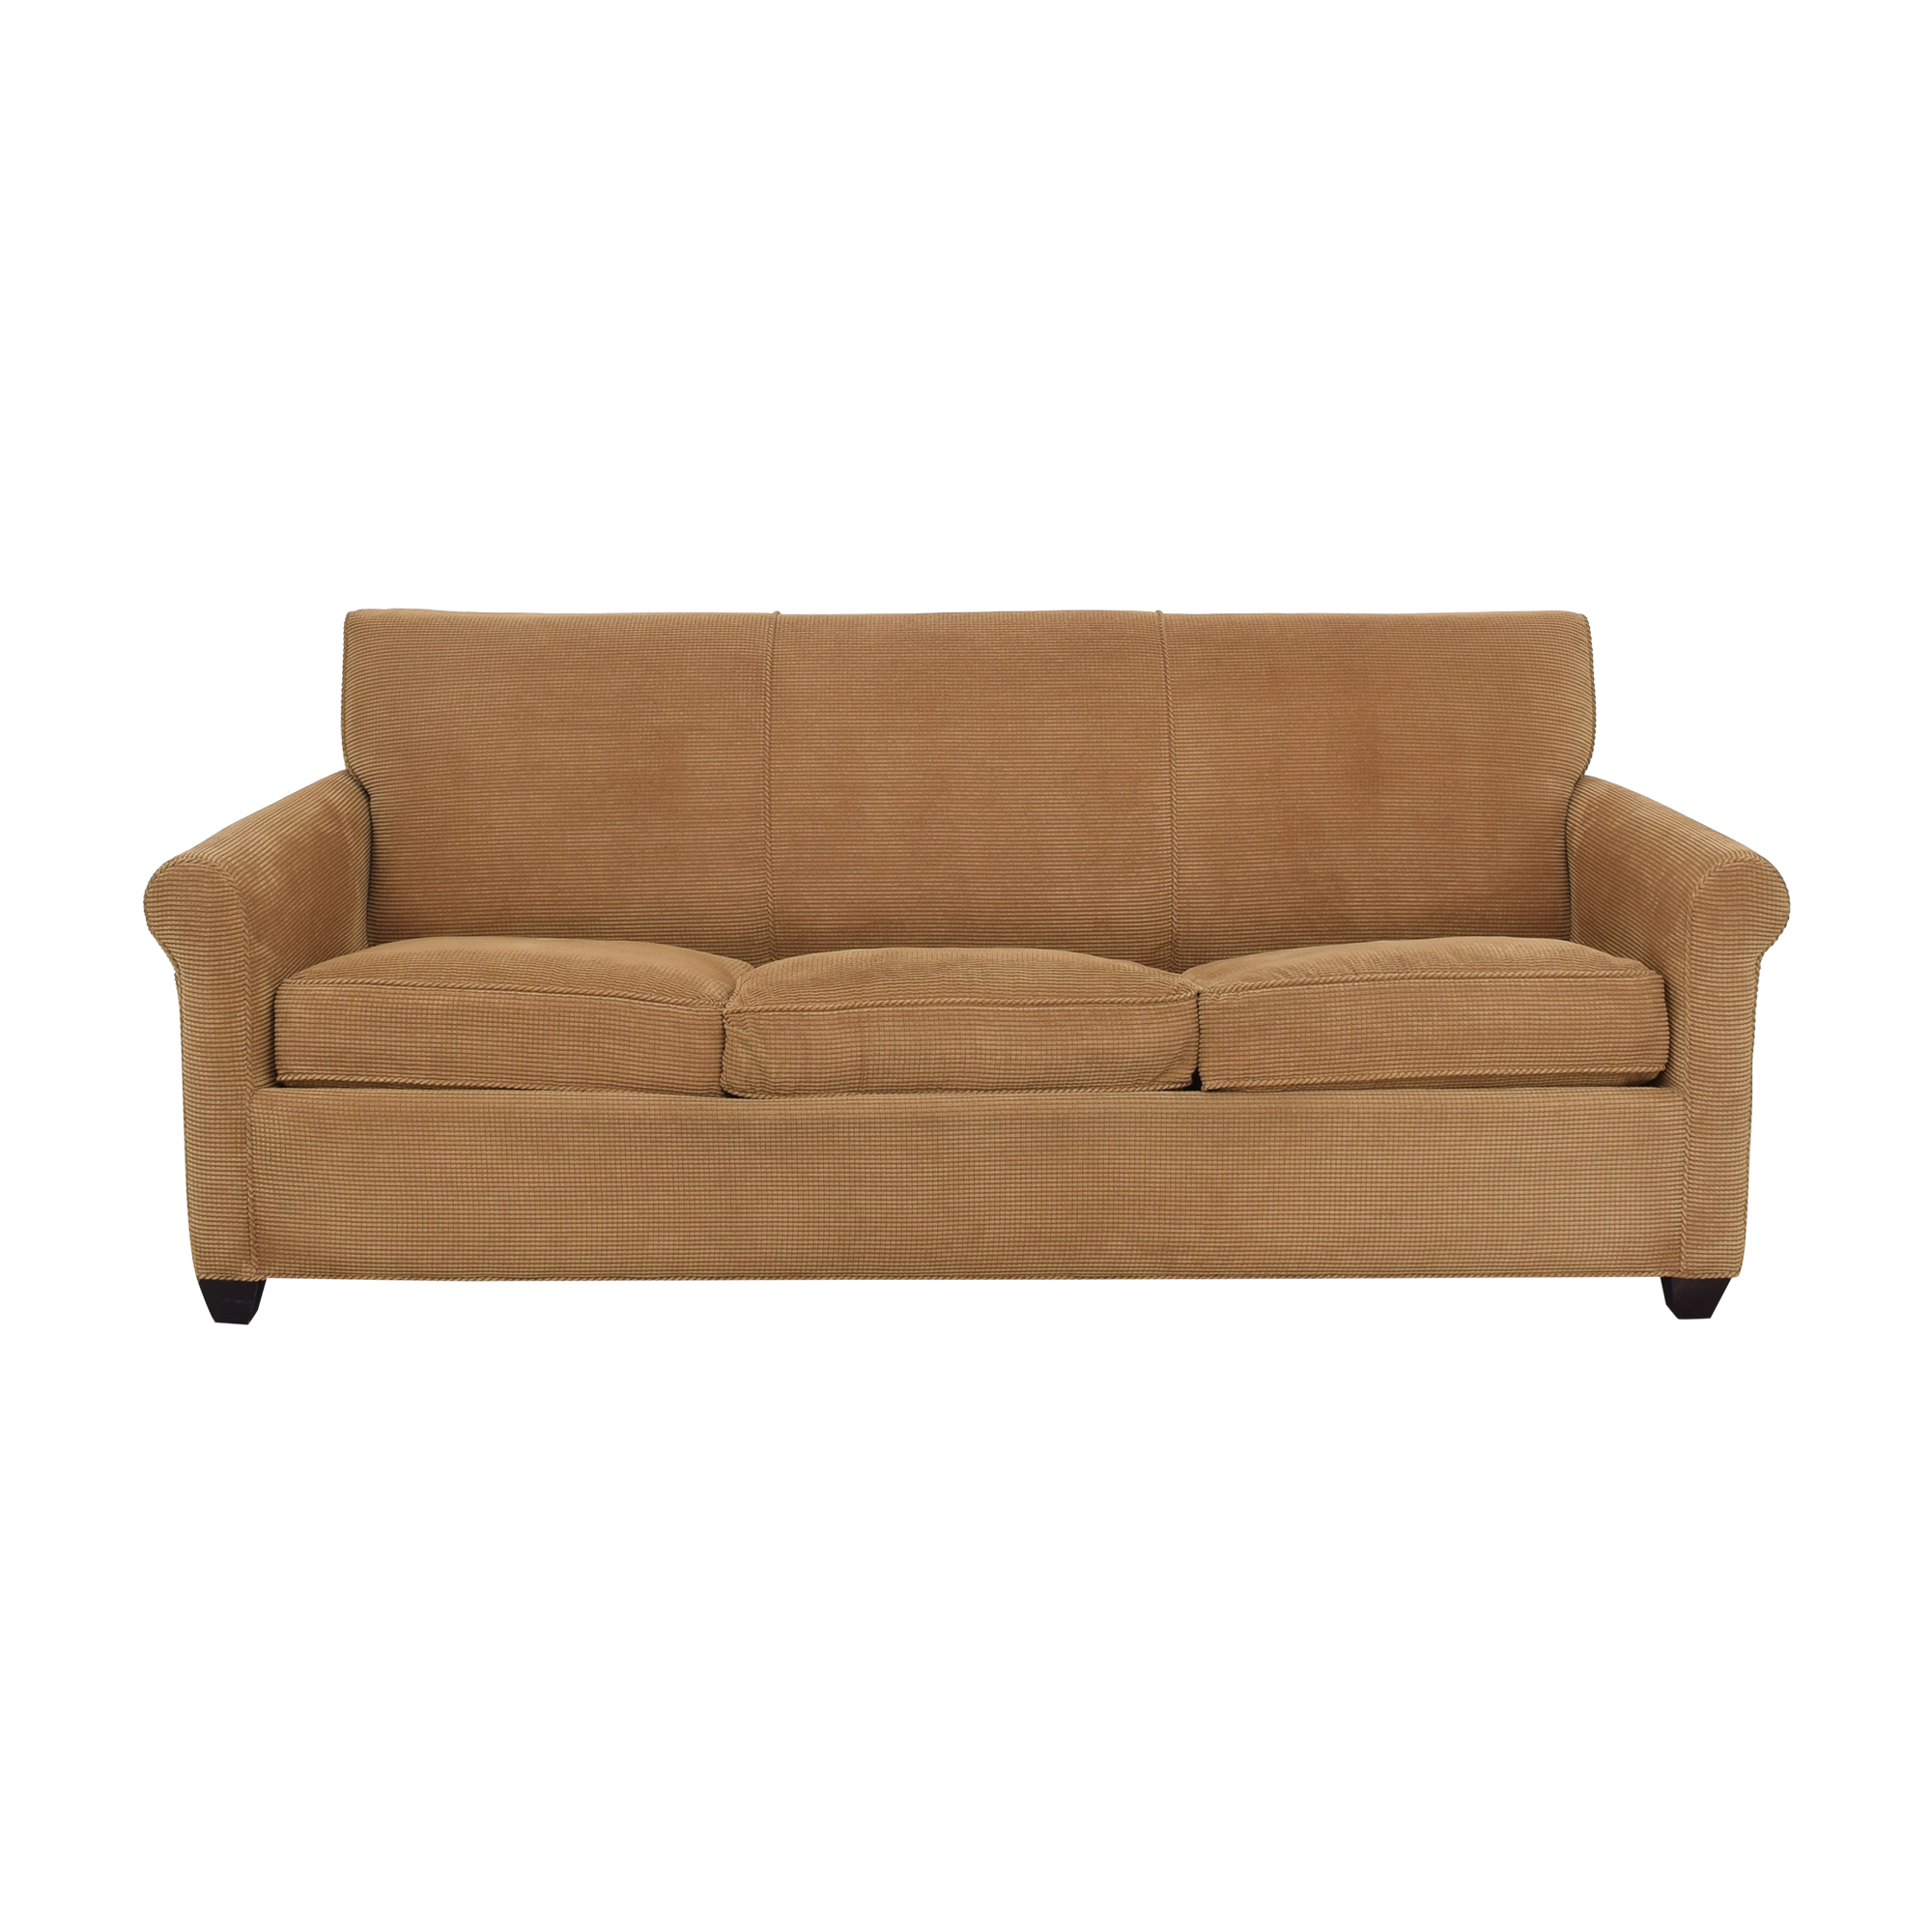 buy Crate & Barrel Rolled Arm Queen Sleeper Sofa Crate & Barrel Sofas